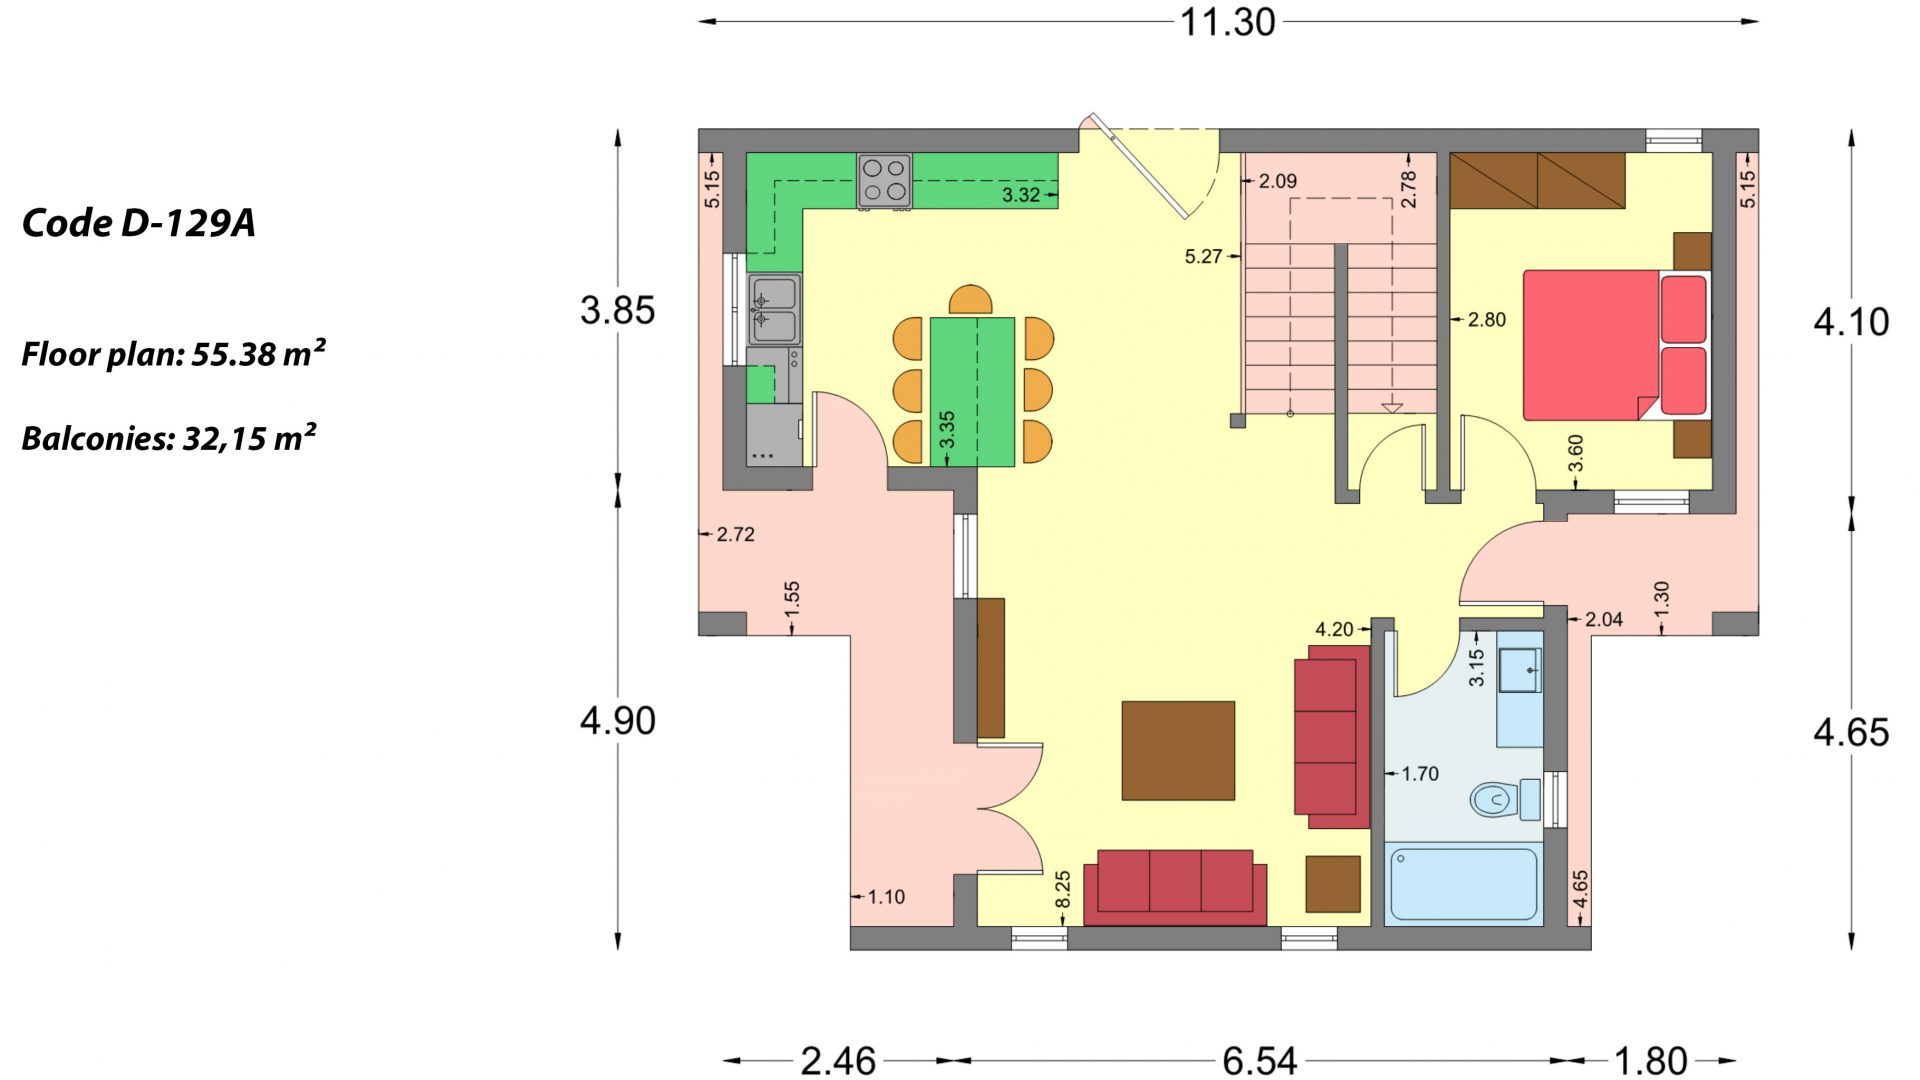 2-story house D-129A, total surface of 129,45 m²,roofed areas 13.39 m²,balconies 32.15 m²